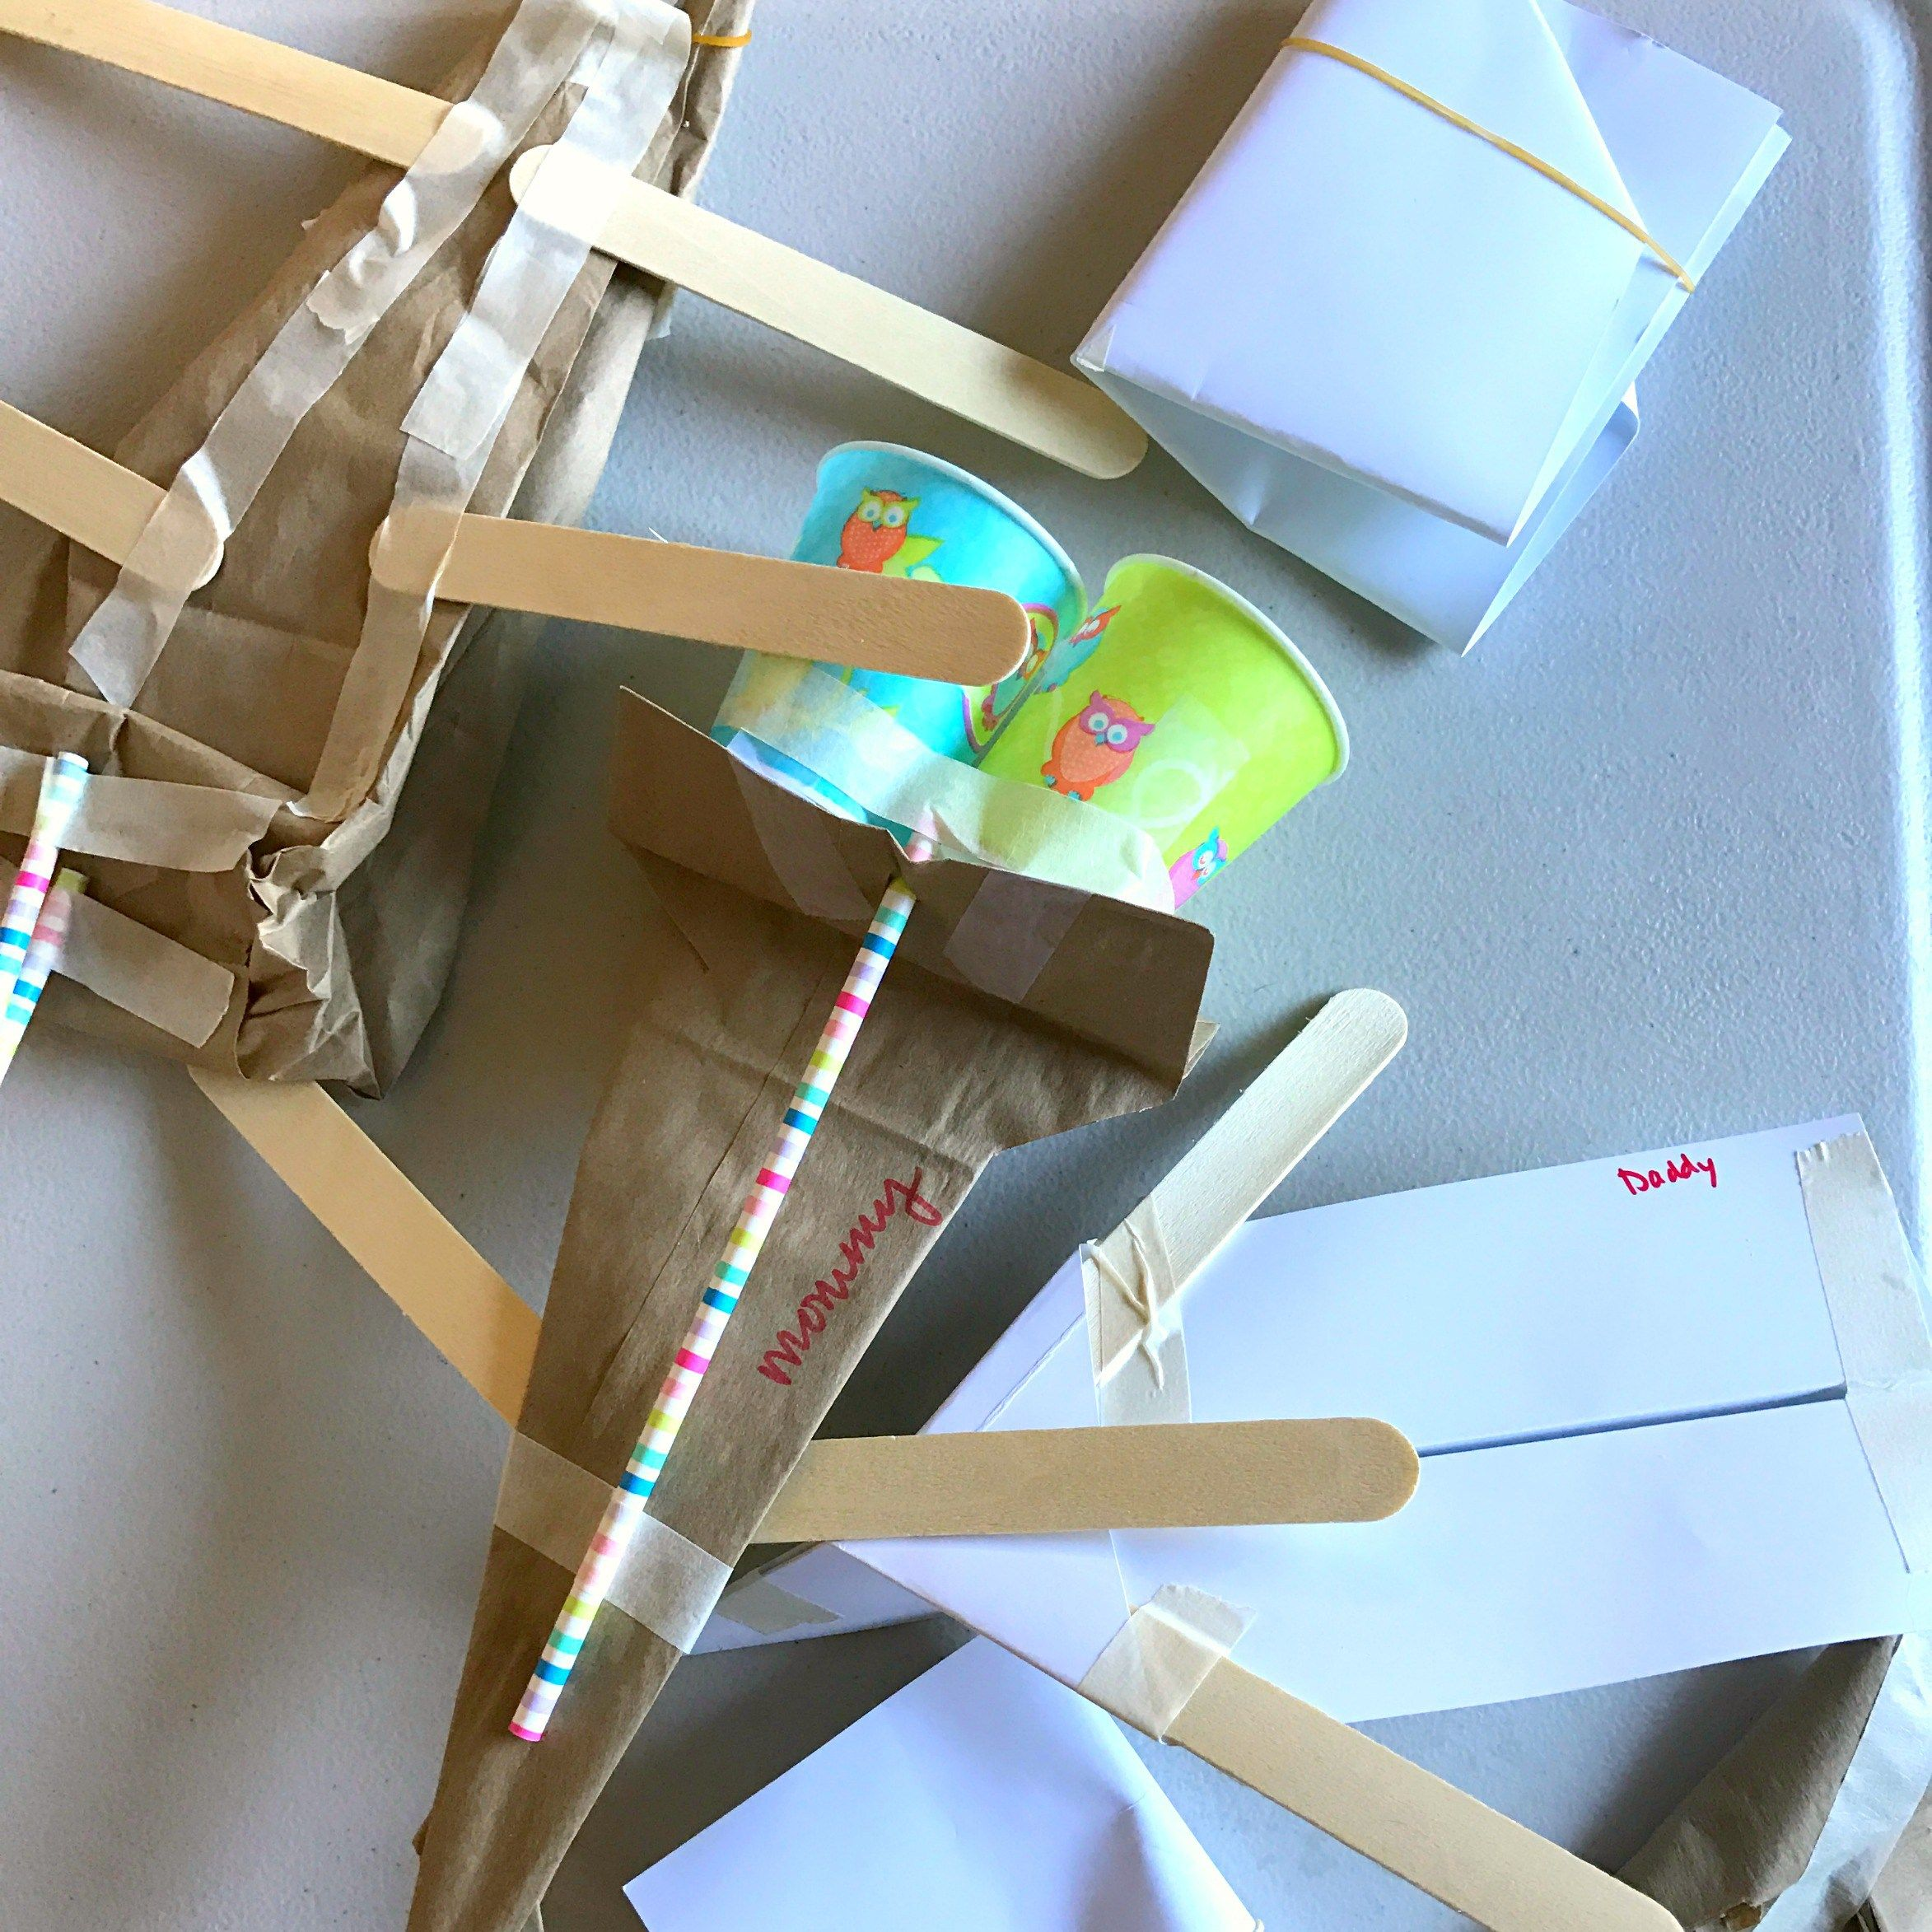 Build A Flying Machine Stem Challenge For Kids With